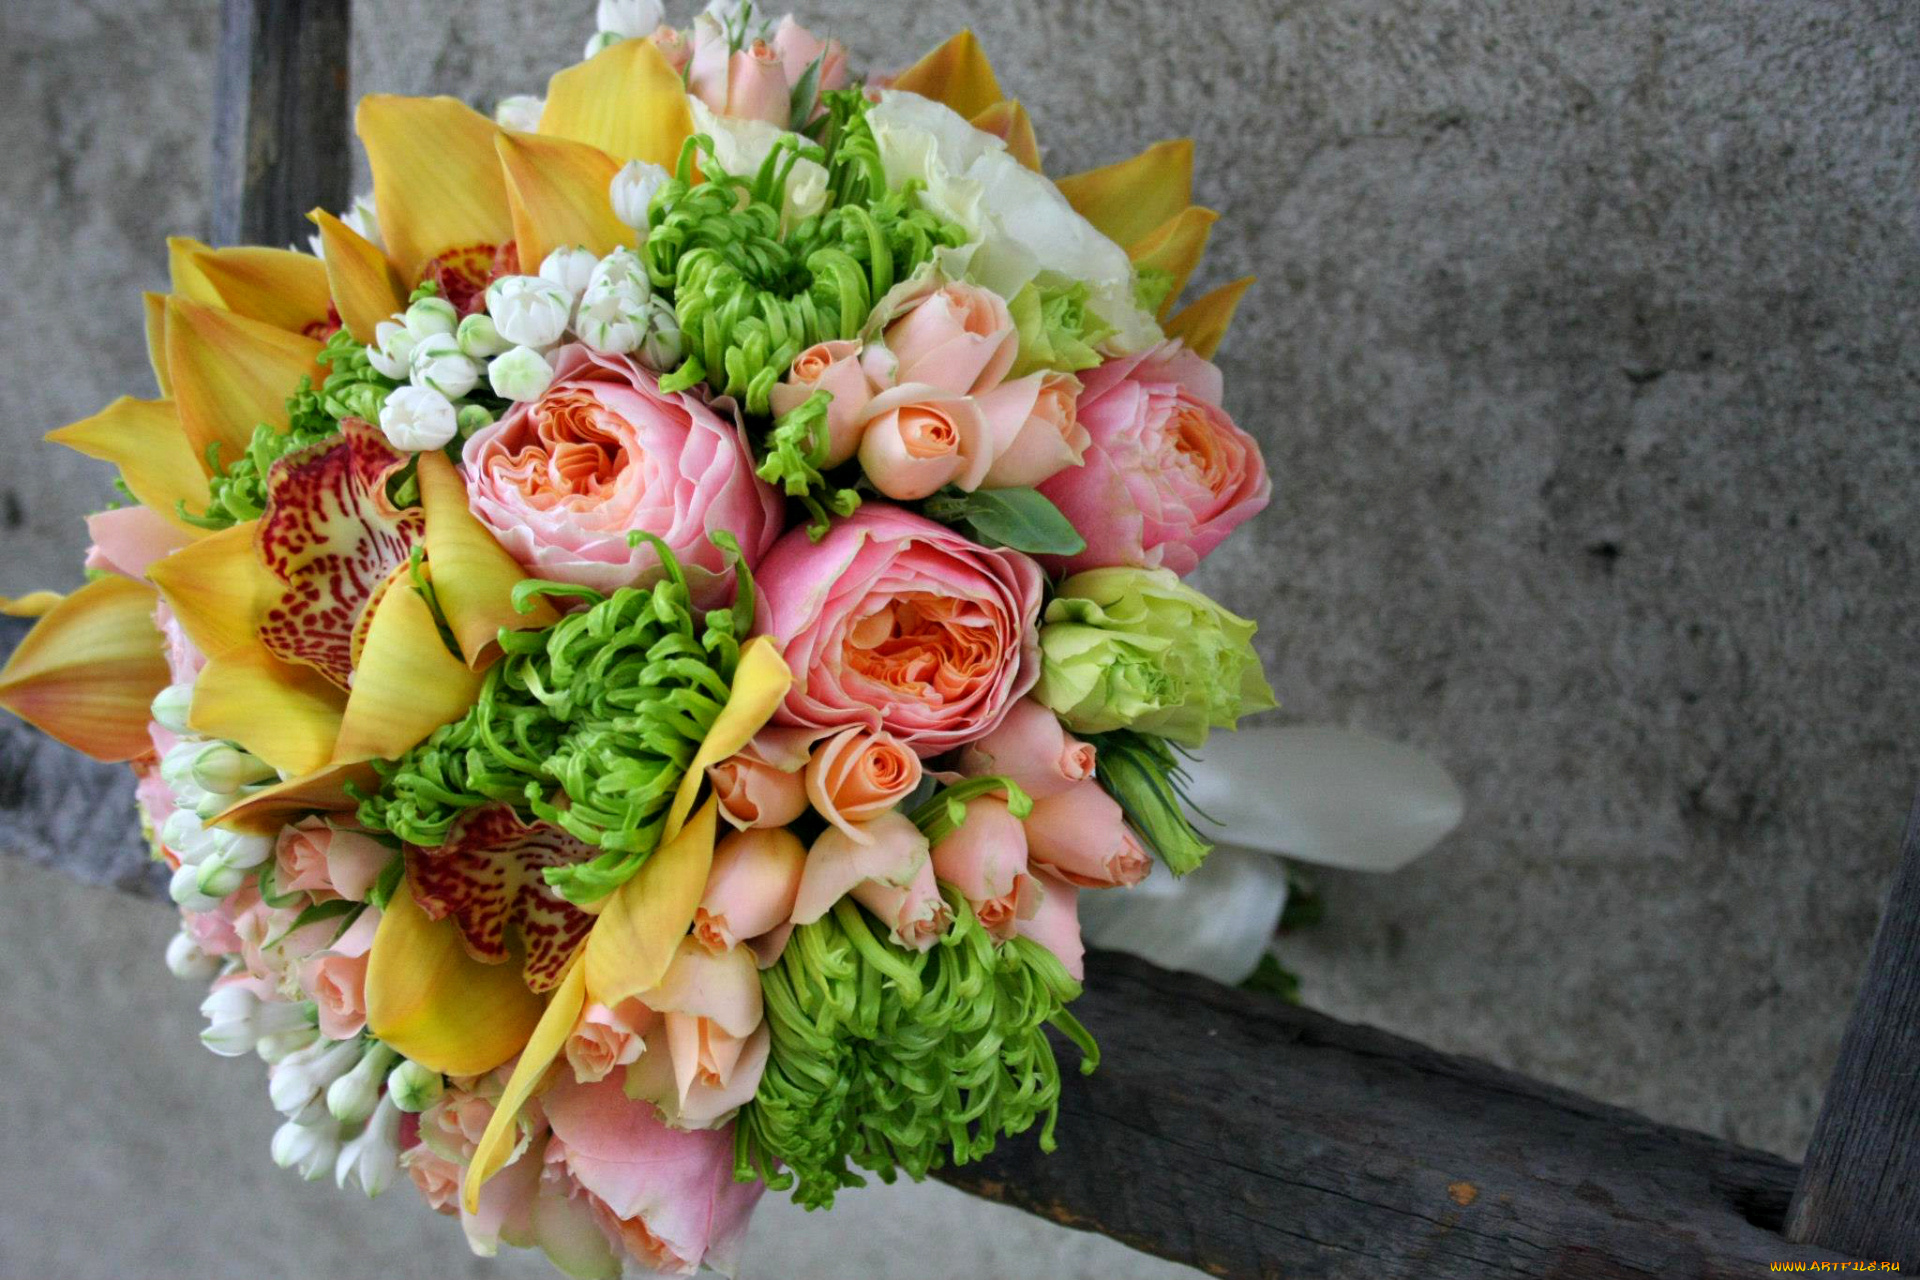 Flower Delivery Online India's No.1 Florist - Ferns N Petals Pictures of bouquet of fresh flowers